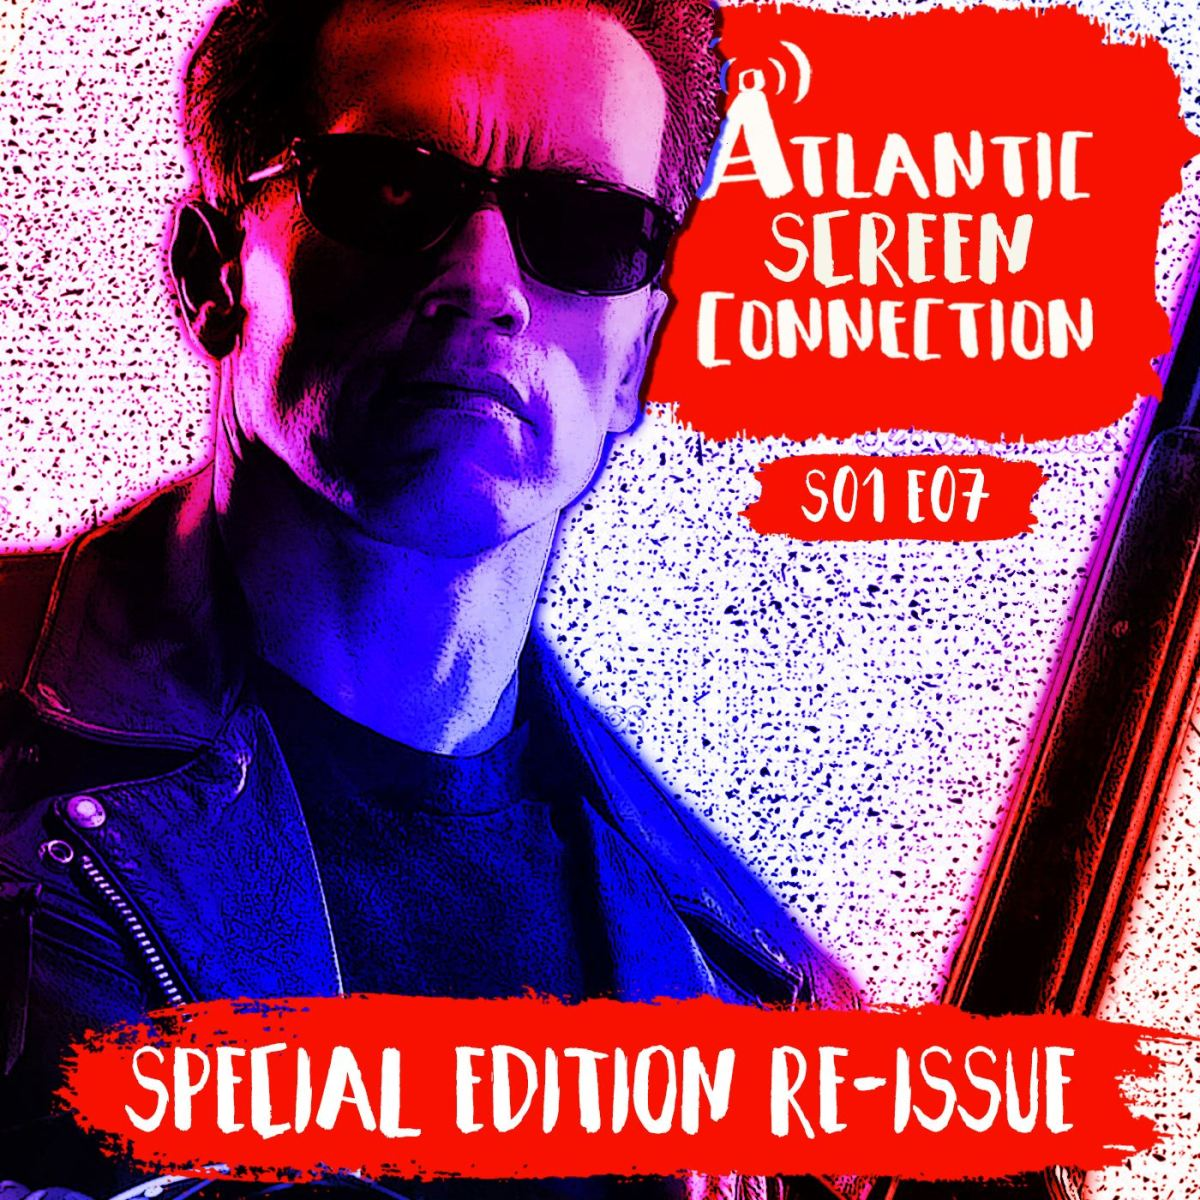 PODCAST: TERMINATOR 2 JUDGMENT DAY SPECIAL EDITIONRE-ISSUE